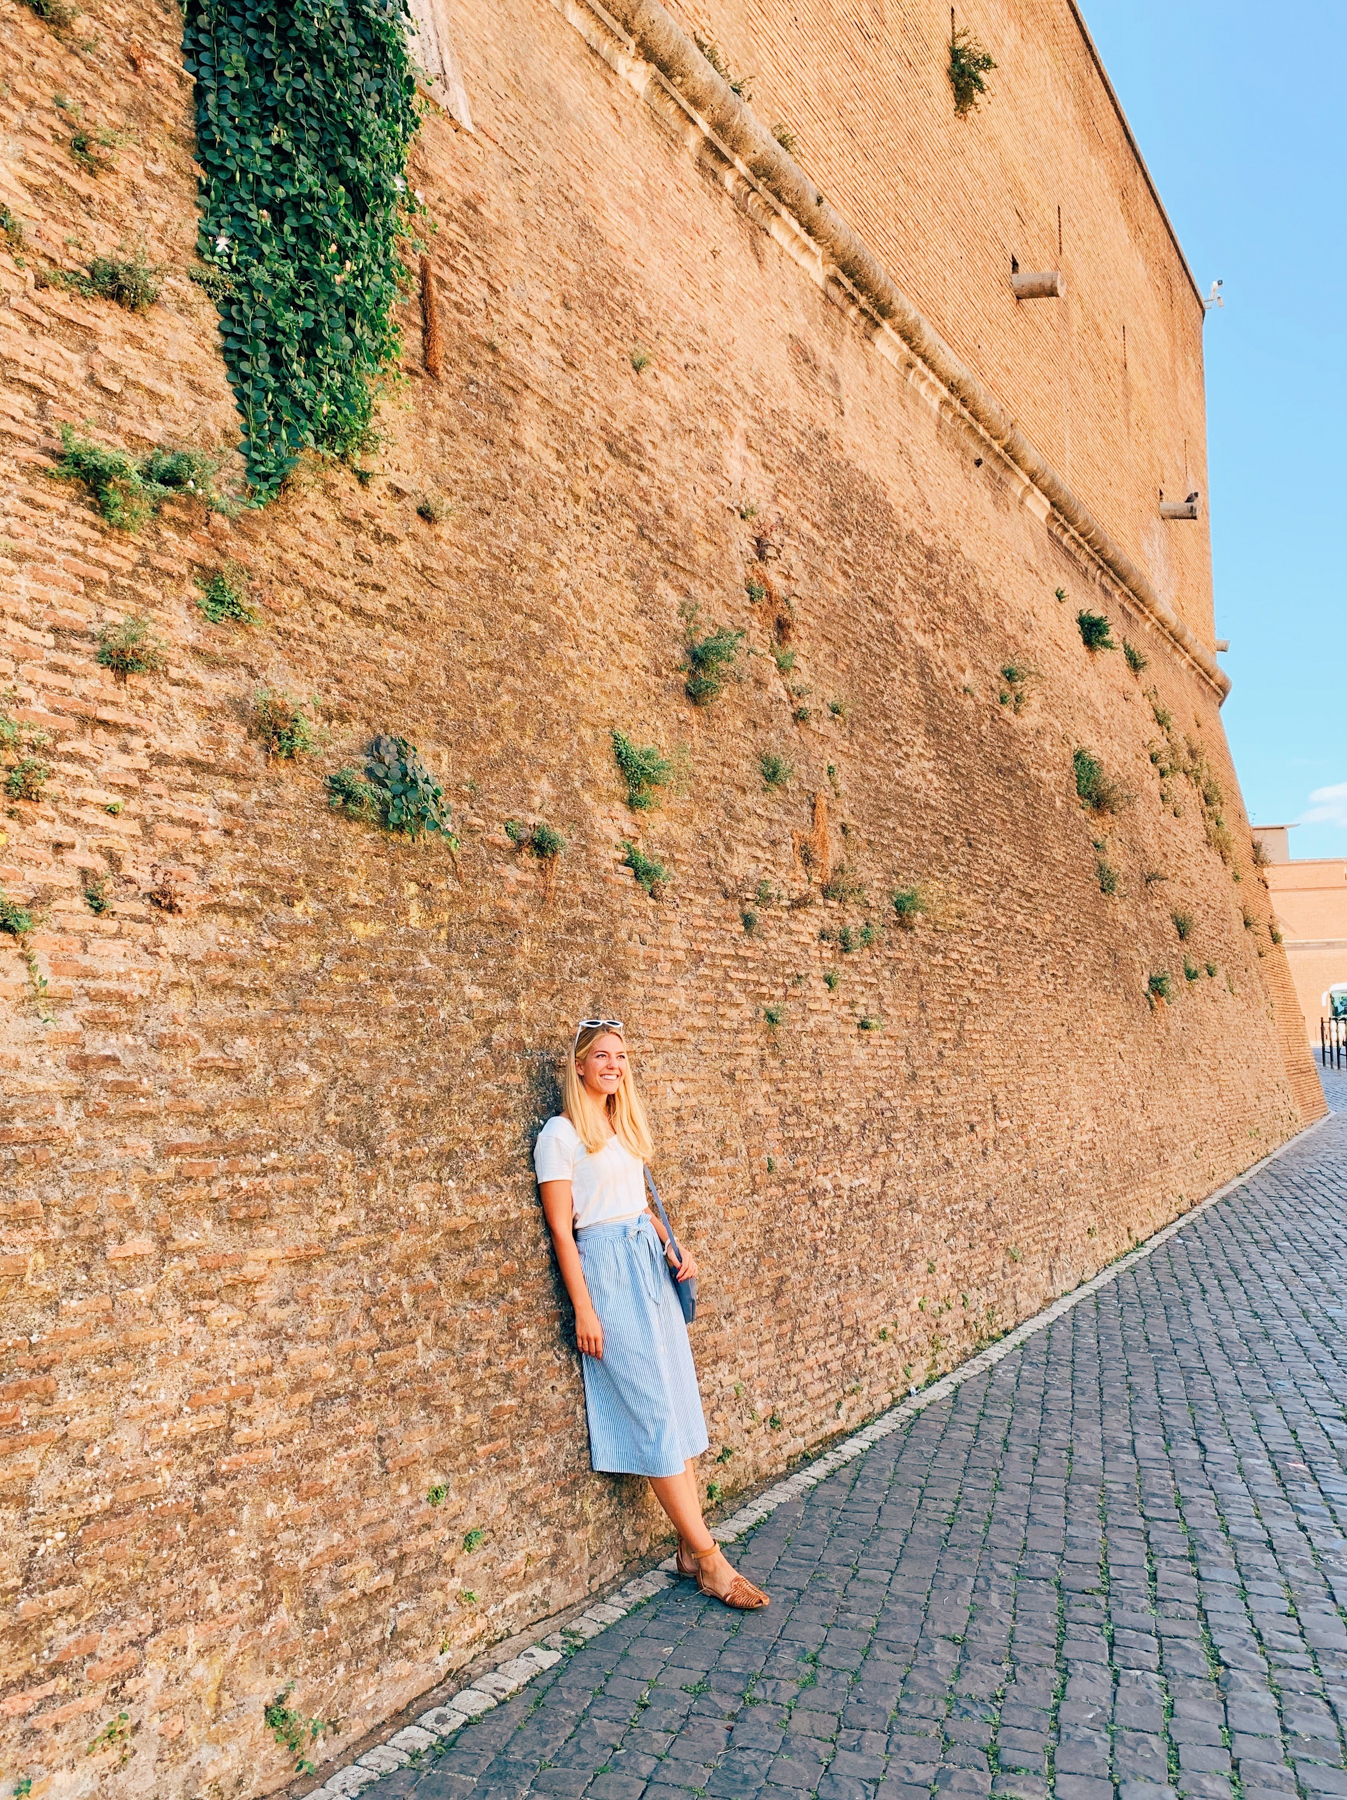 Me leaning on the walls of Vatican City.